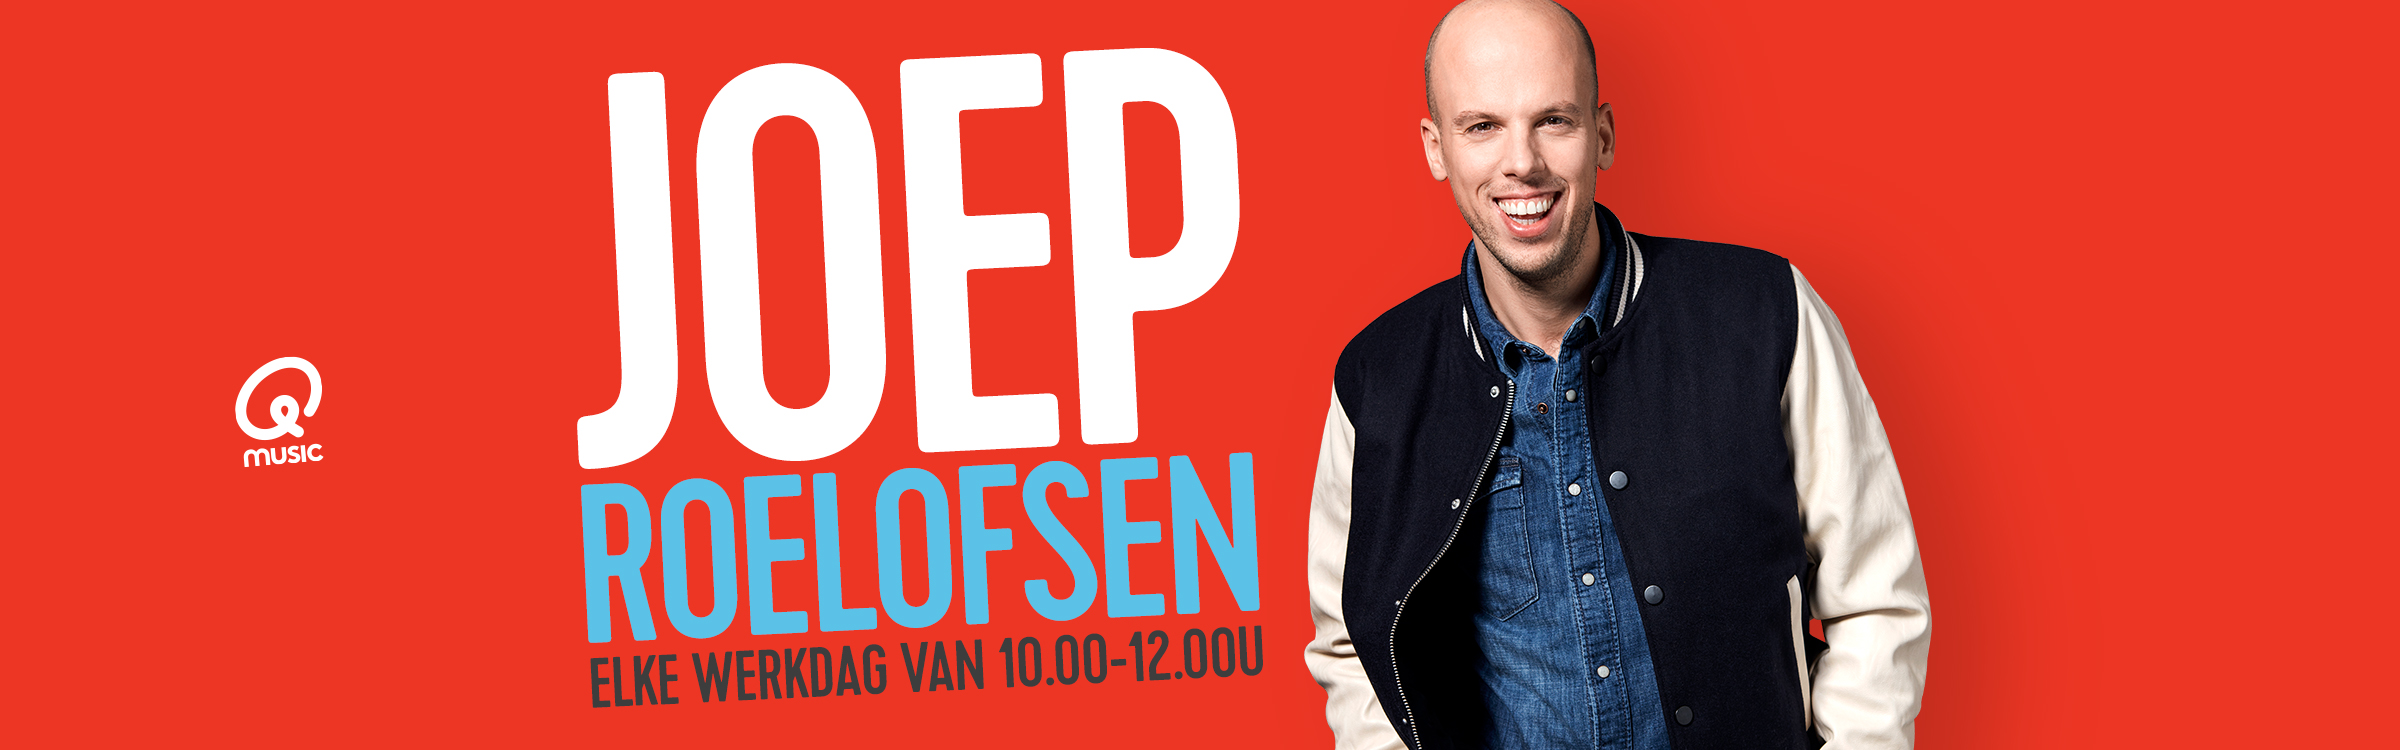 Qmusic actionheader joep